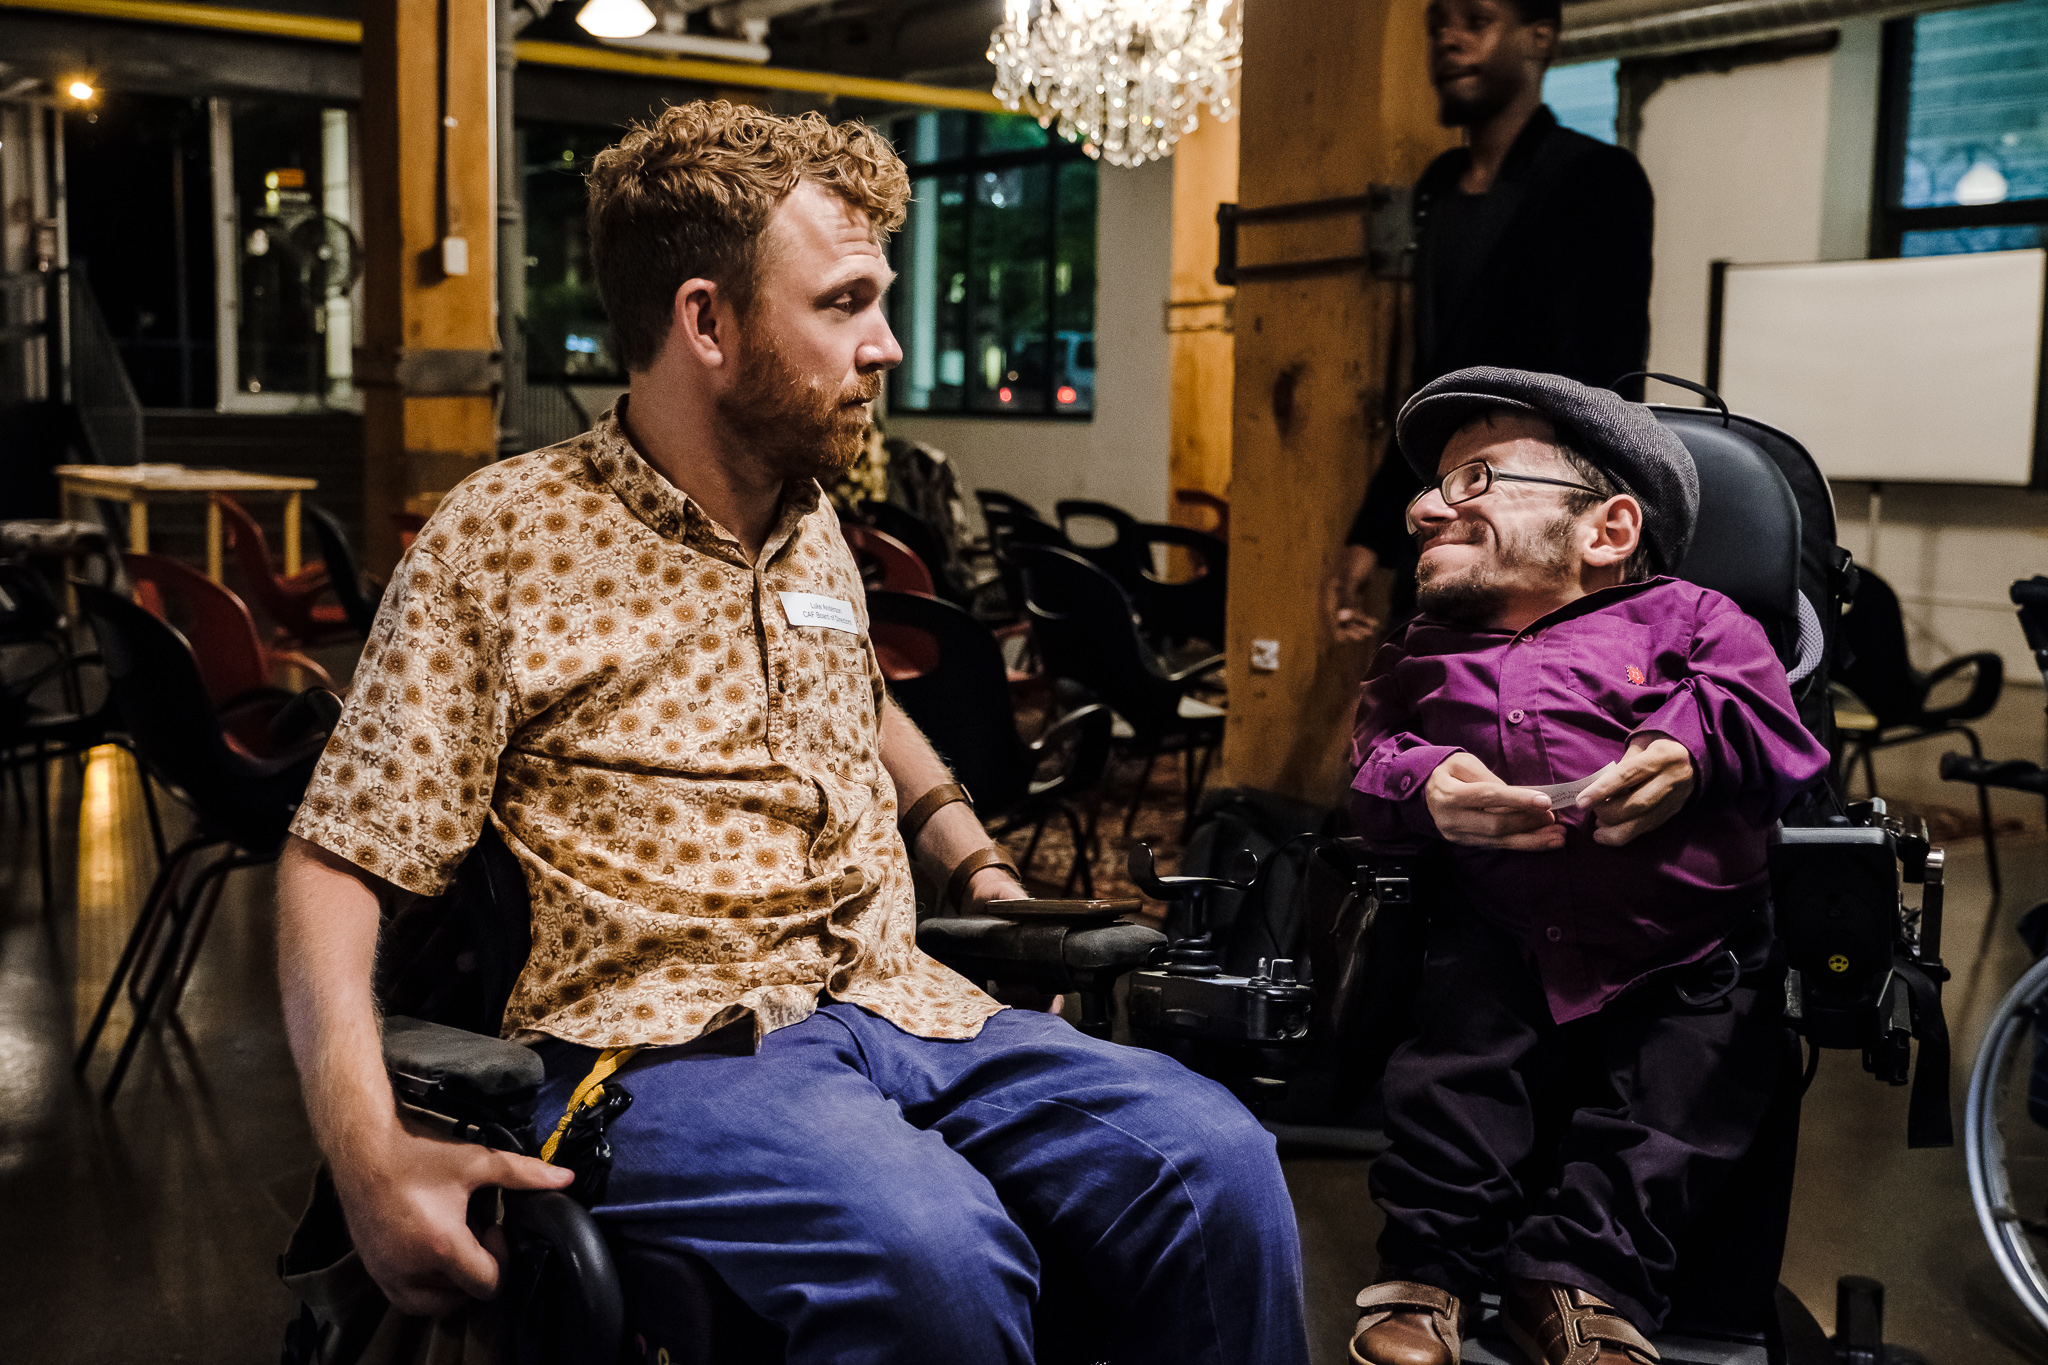 That's also how we met Luke Anderson from the StopGap Foundation,...